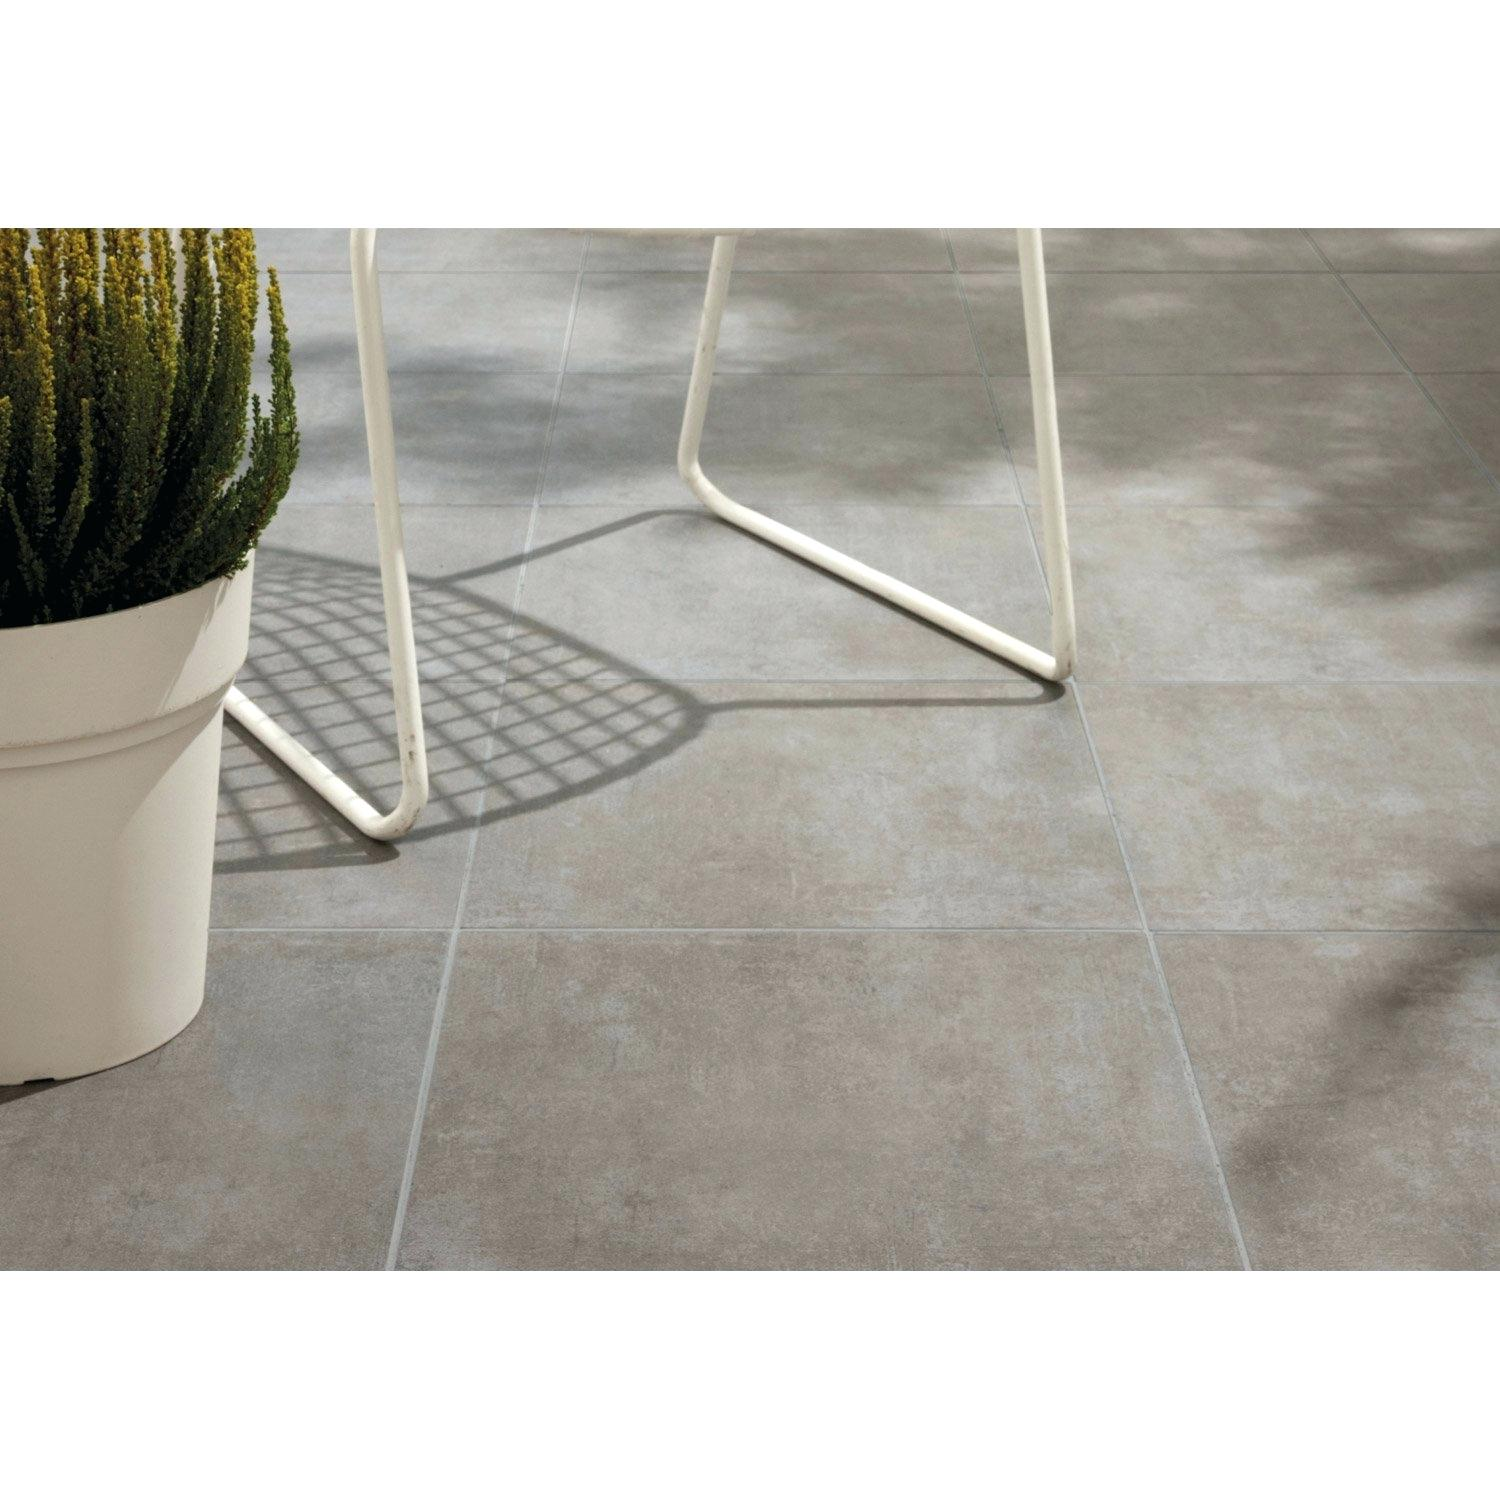 Carrelage anthracite rectangulaire